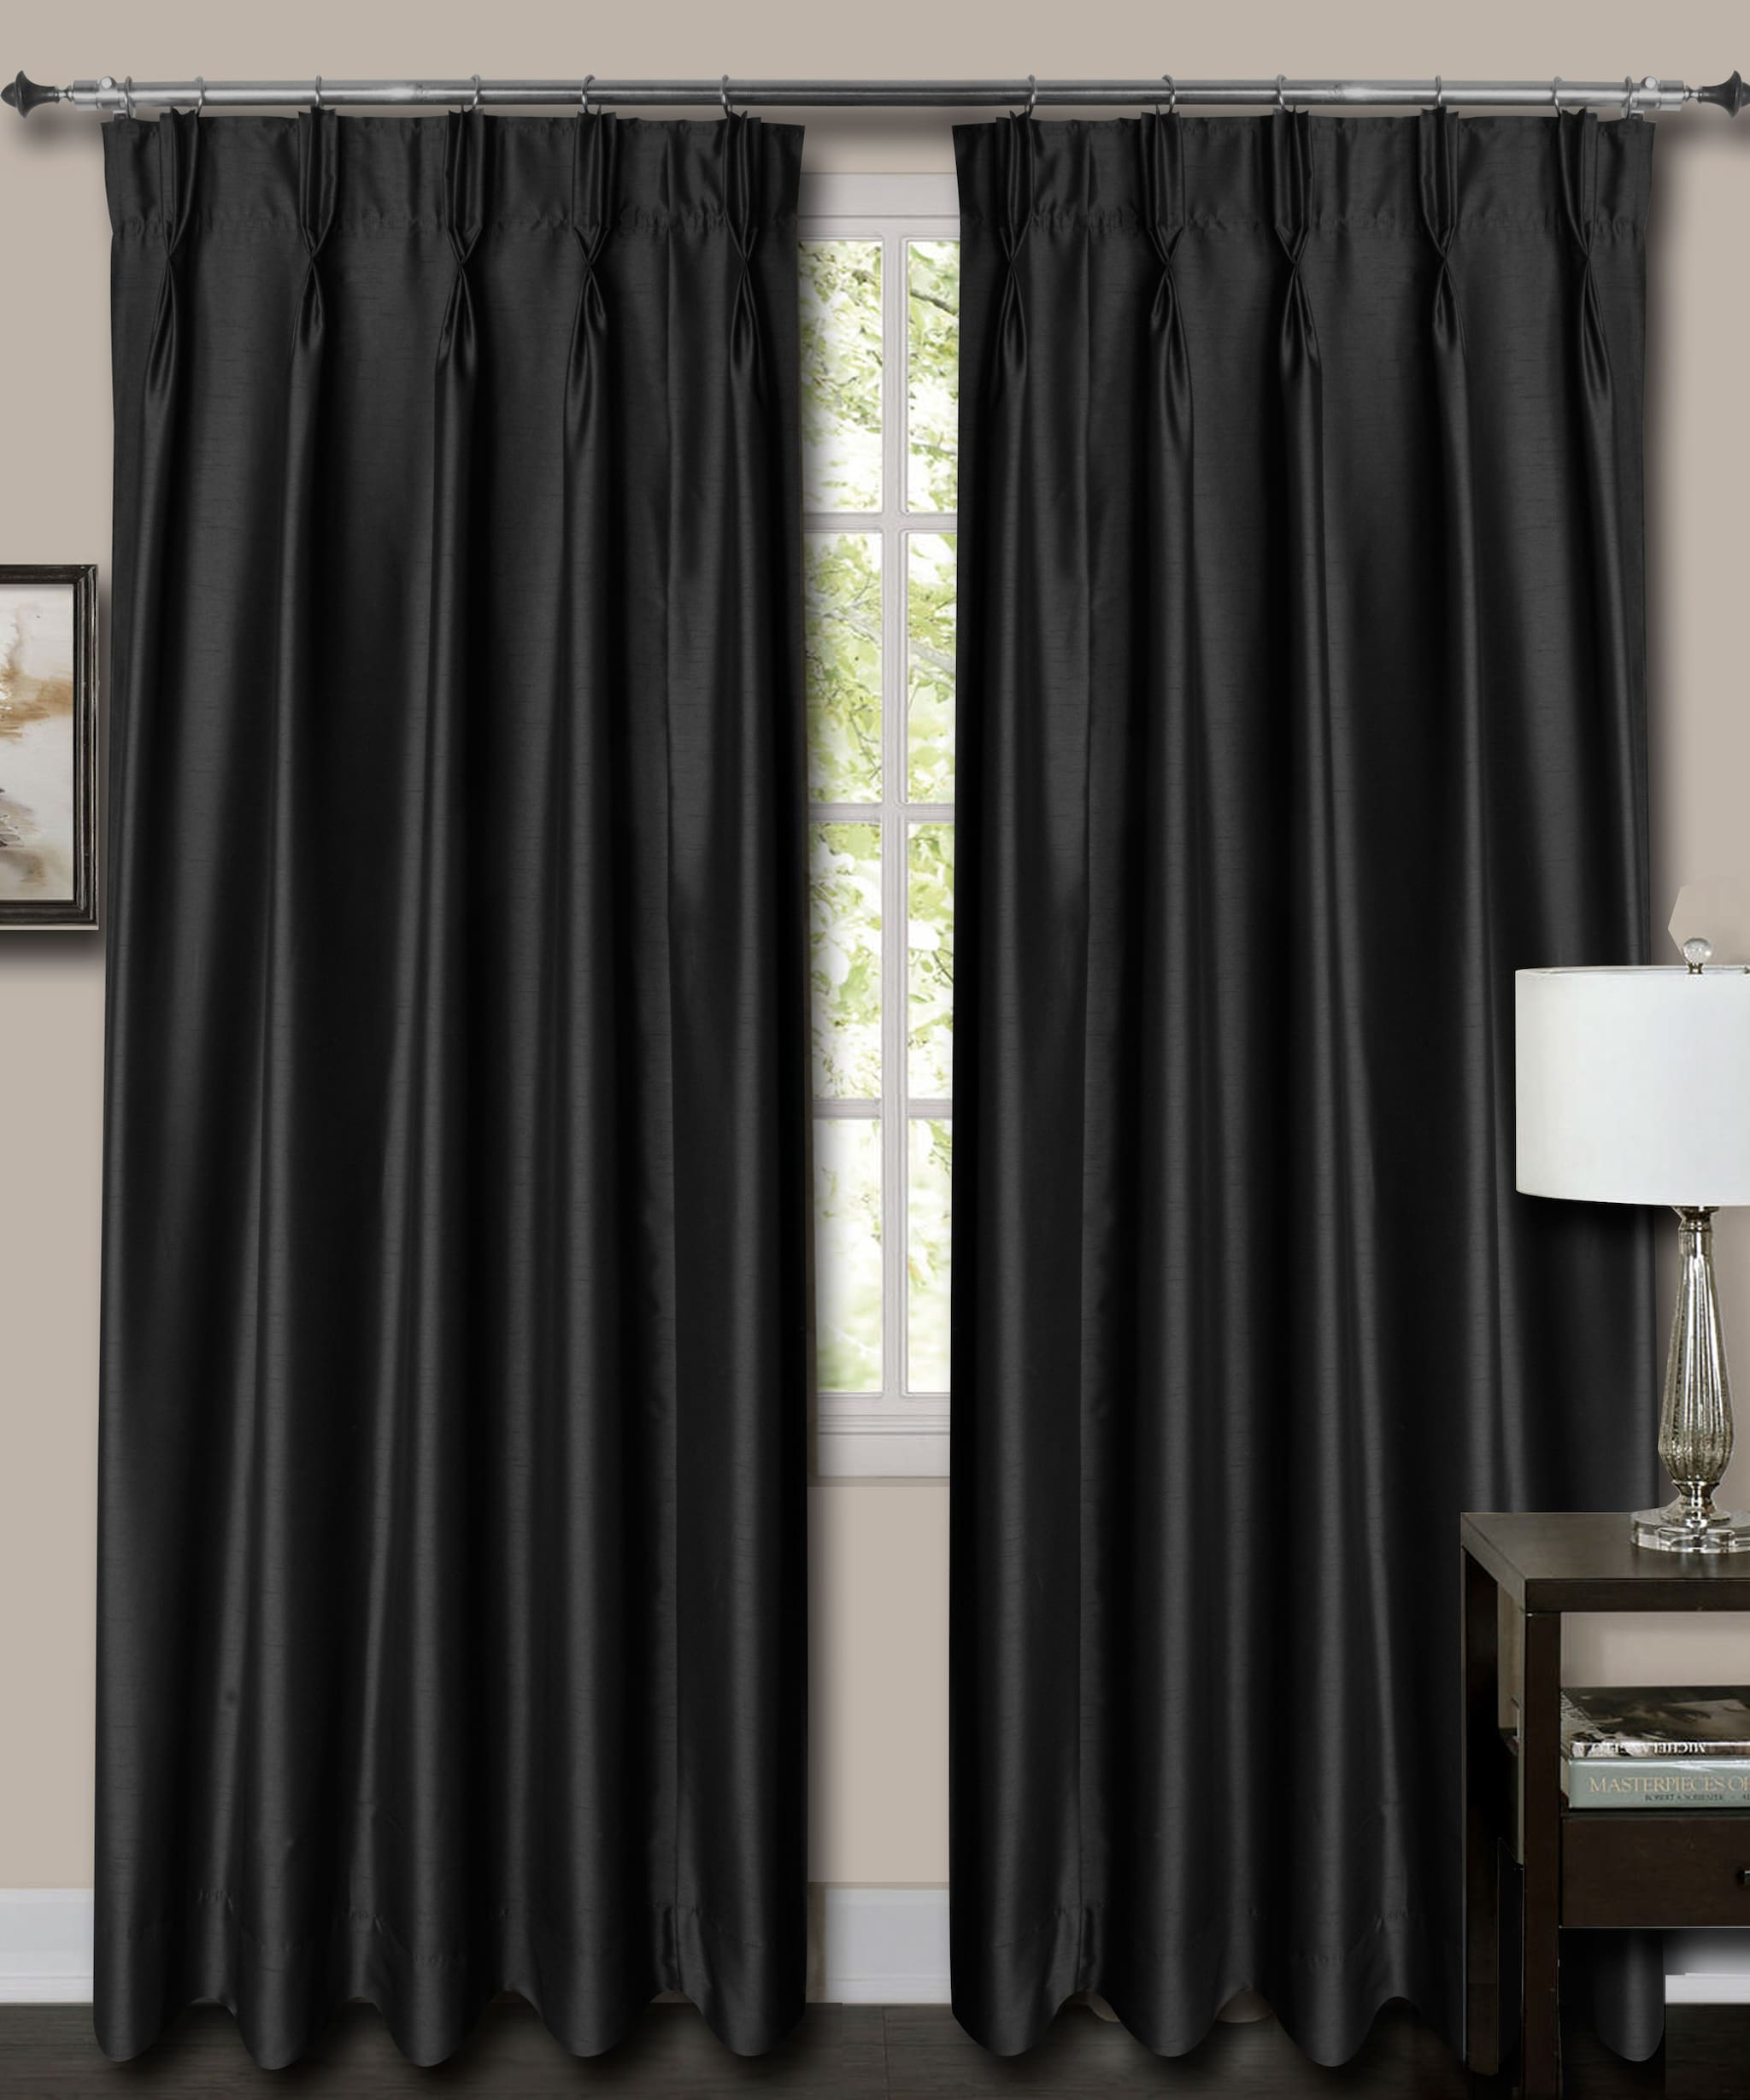 """French Pleat Top Black Faux Silk Dupioni Curtains. (24"""" Wide,11 Feet Long,Blackout Lining)"""